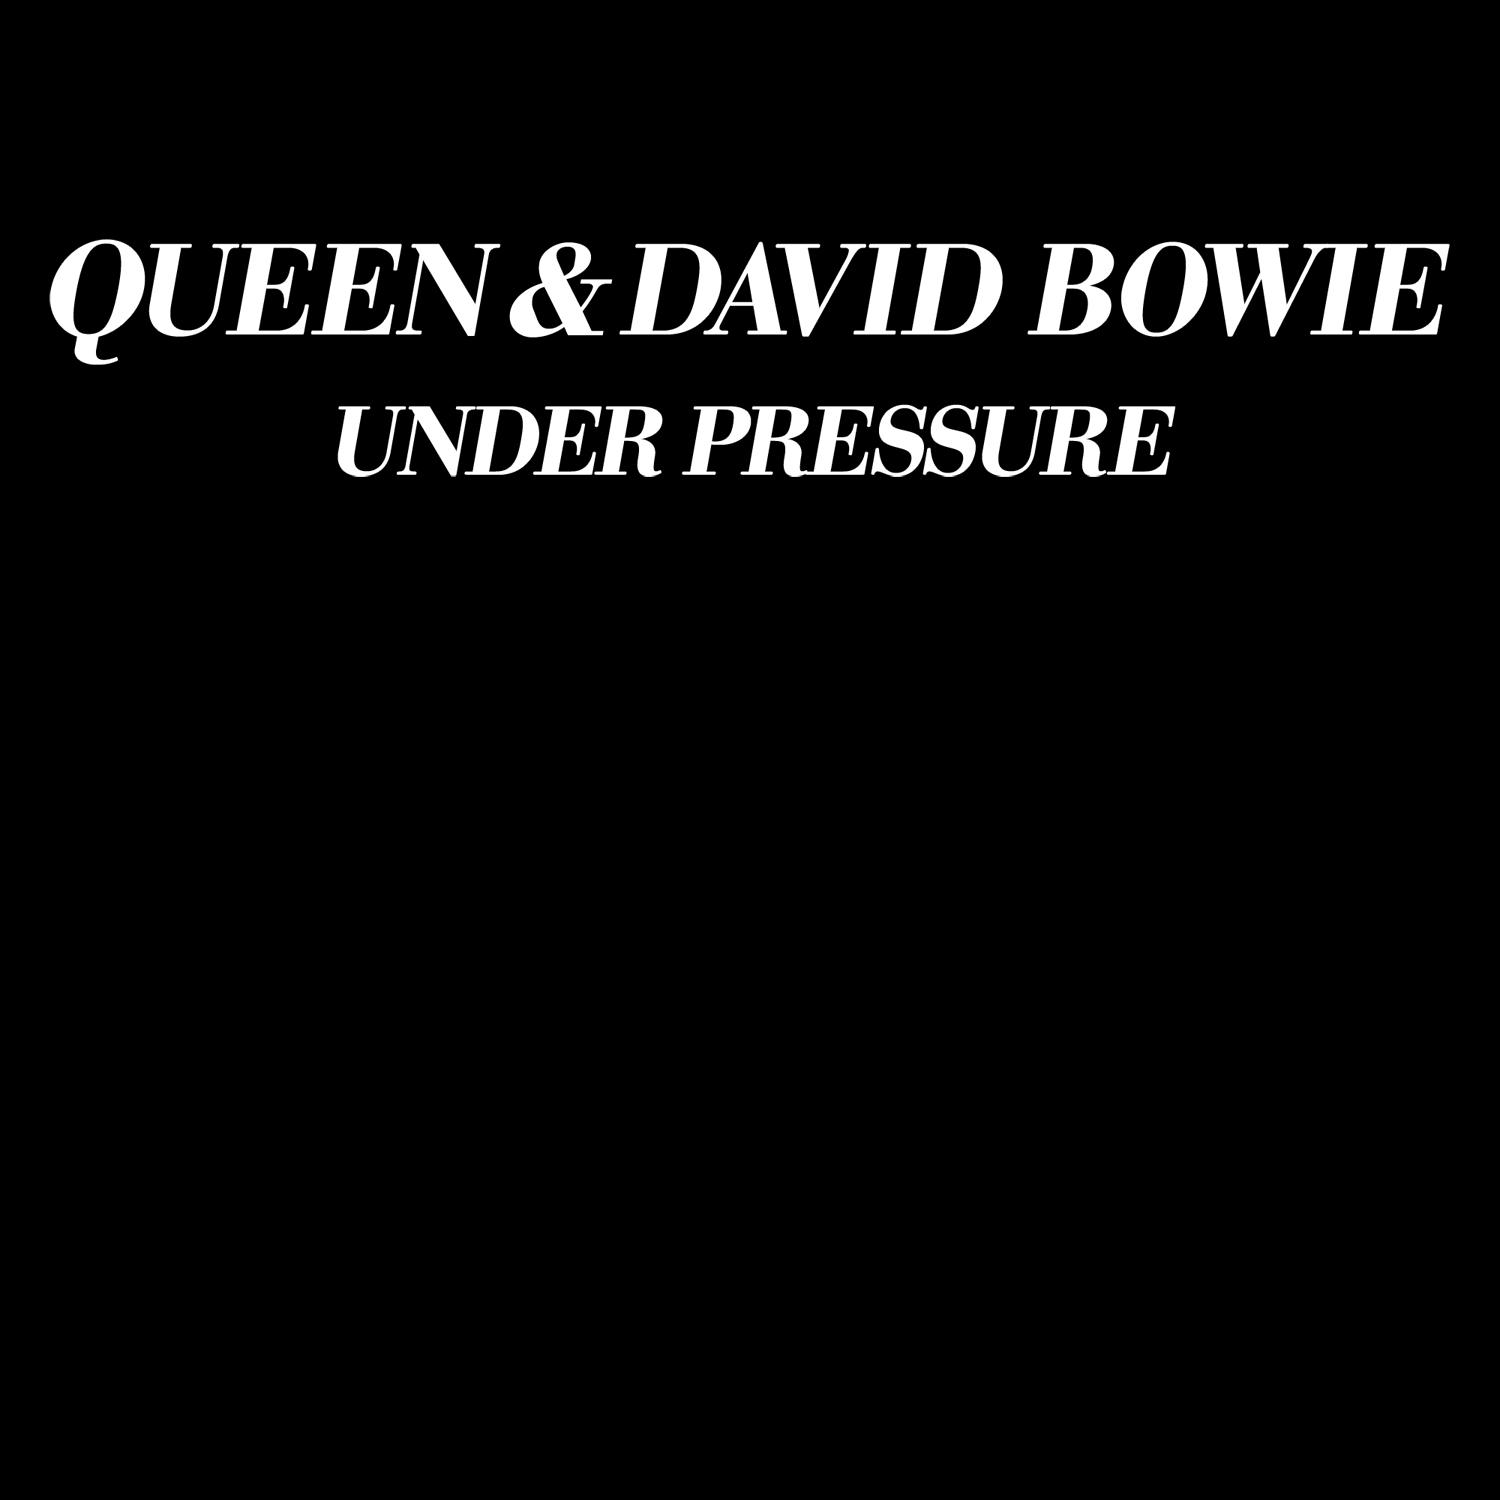 Queen_&_David_Bowie_-_Under_Pressure.jpeg